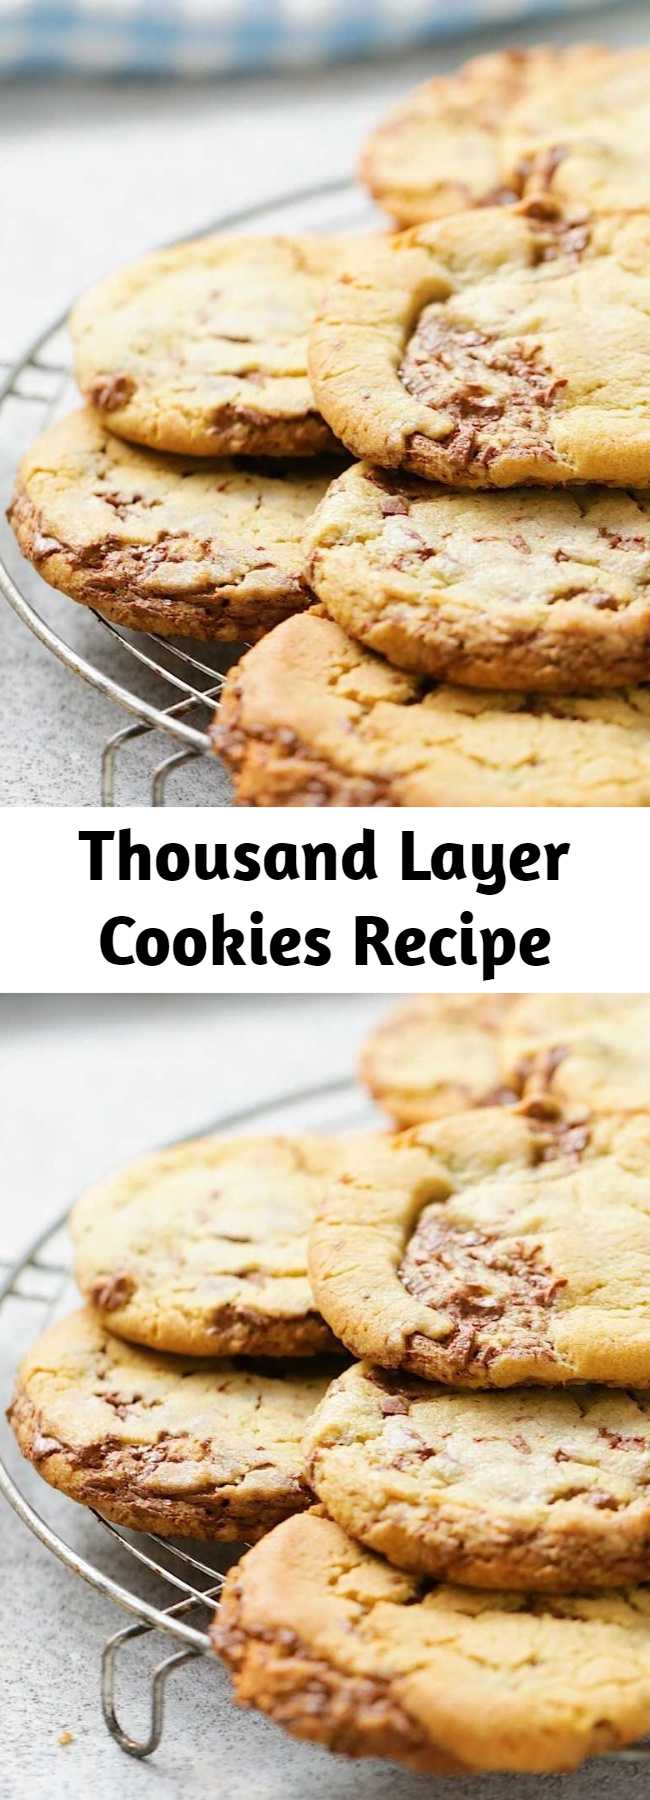 Thousand Layer Cookies Recipe - Little known fact: the name actually refers to how many of these you'll want to layer on your plate.